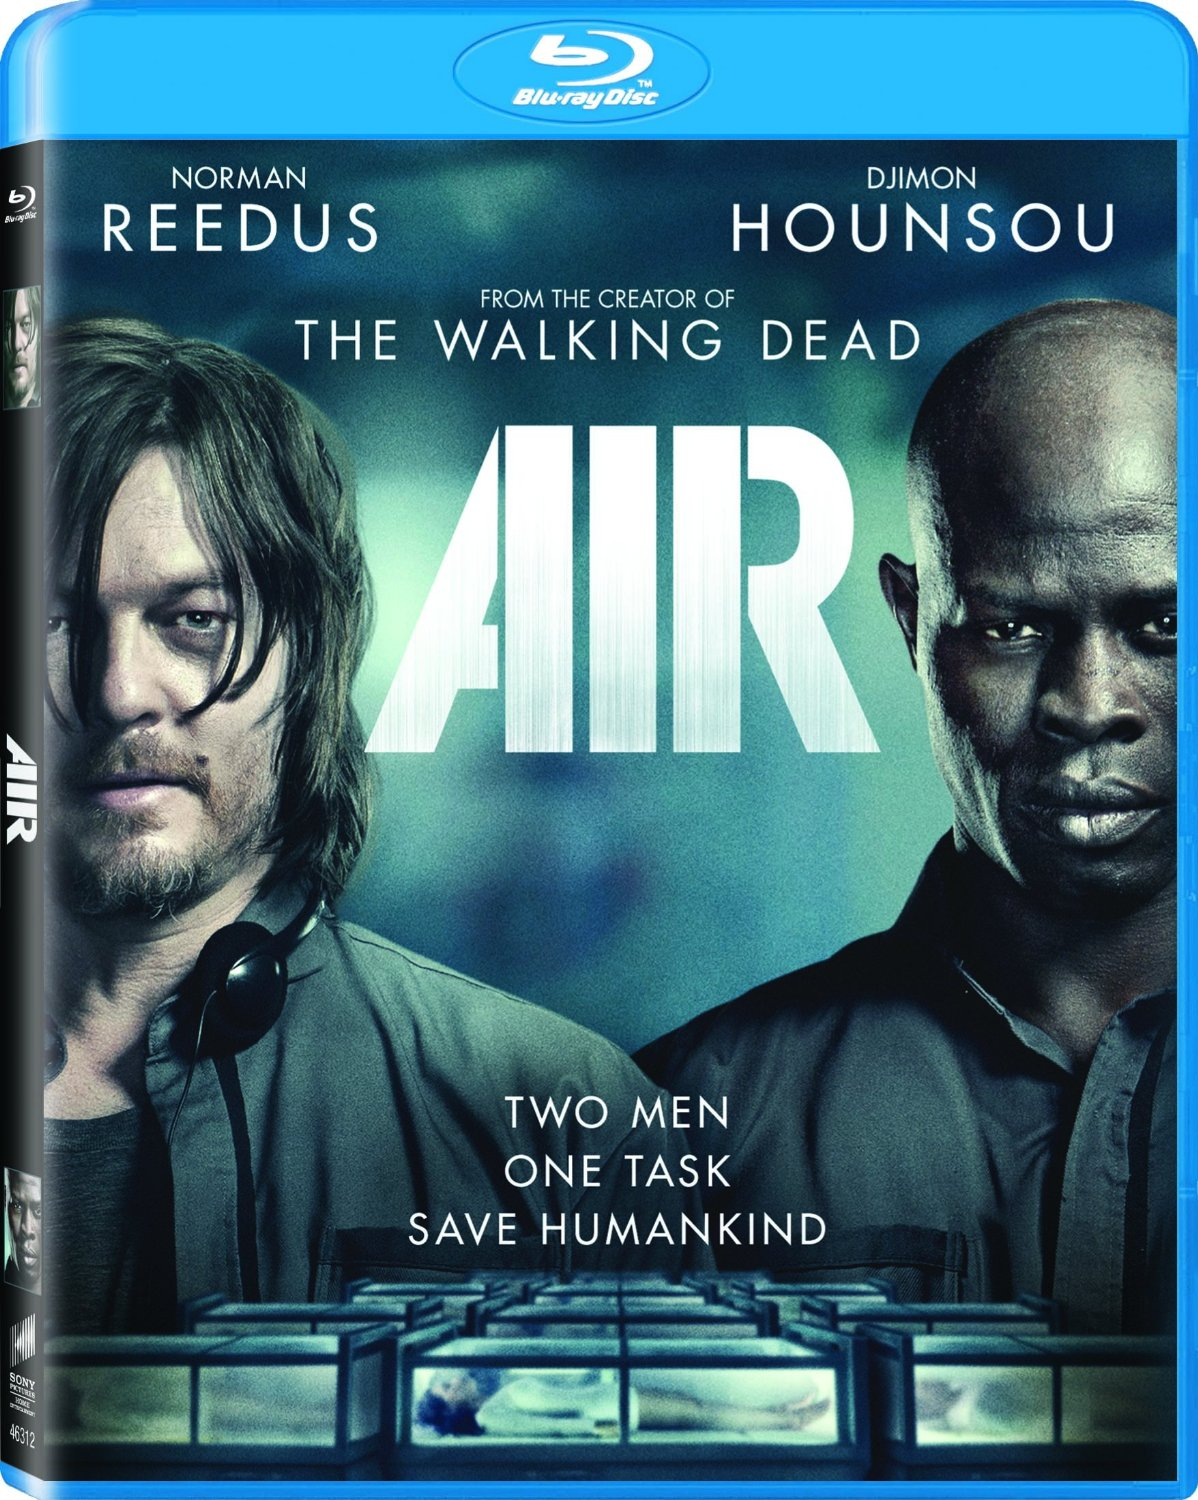 Air (2015) 1080p BD25 Blu-ray Cover Caratula